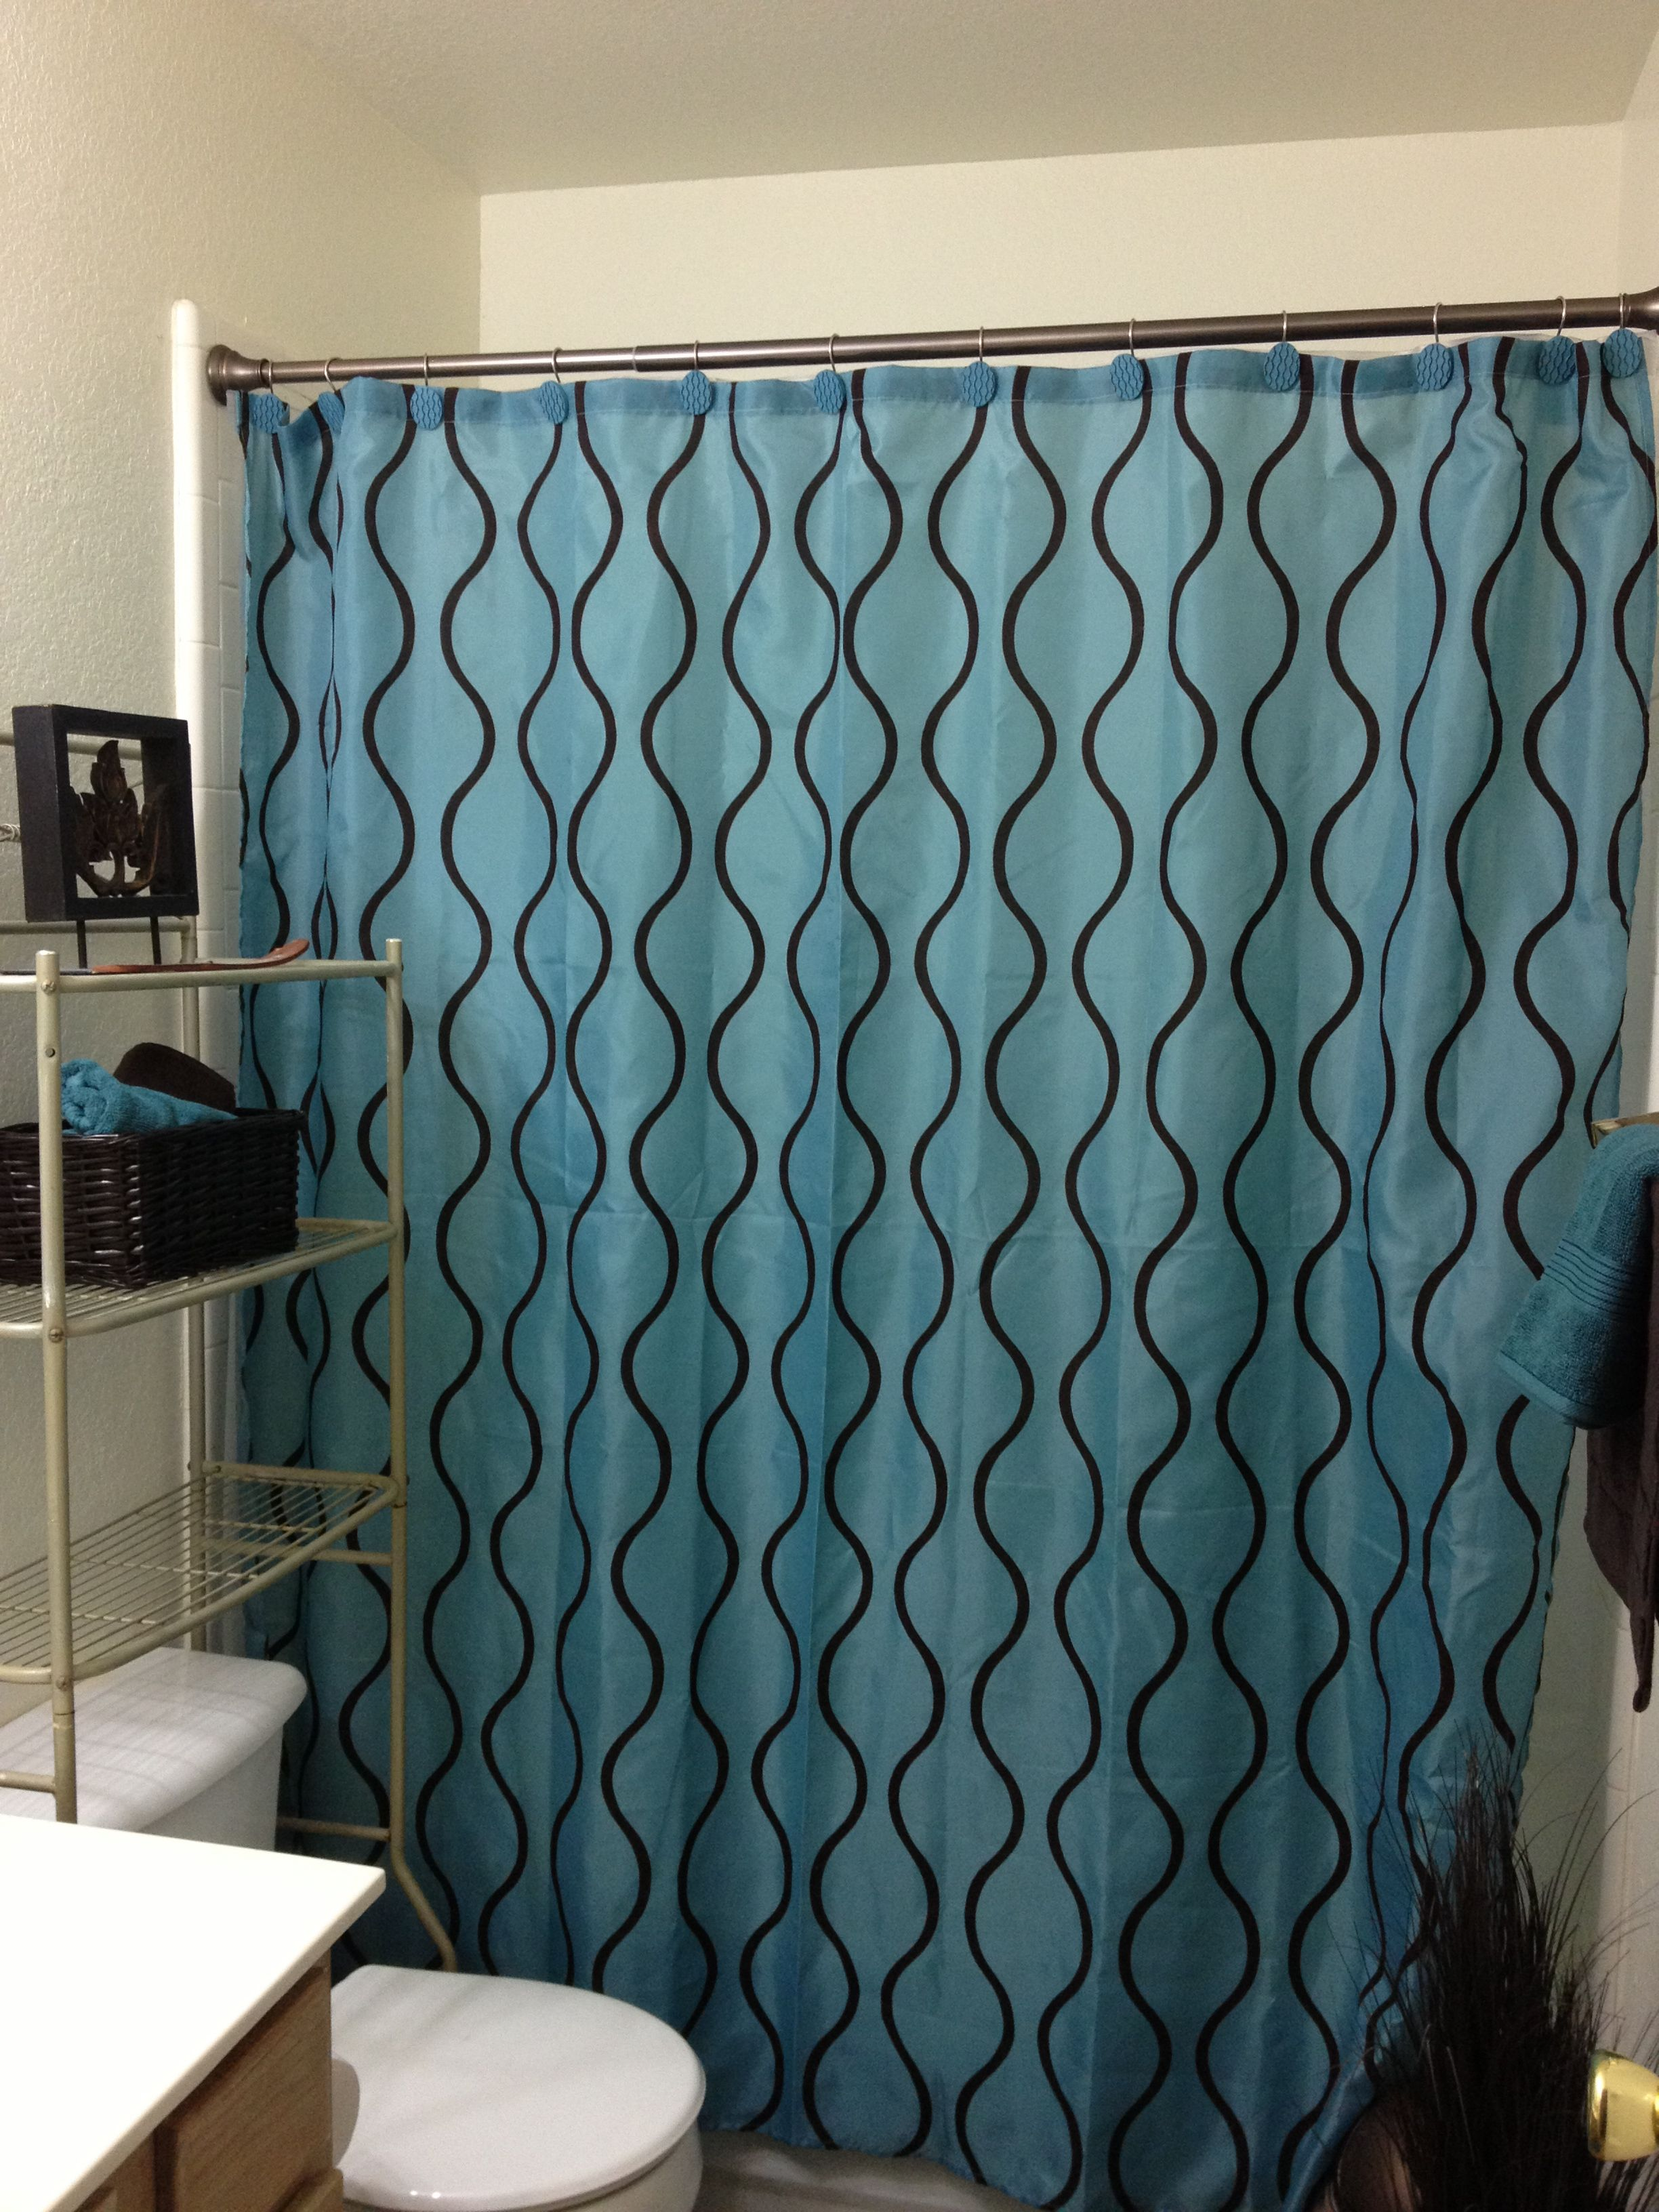 Teal Brown Shower Curtain Teal Bathroom Decor Brown Bathroom